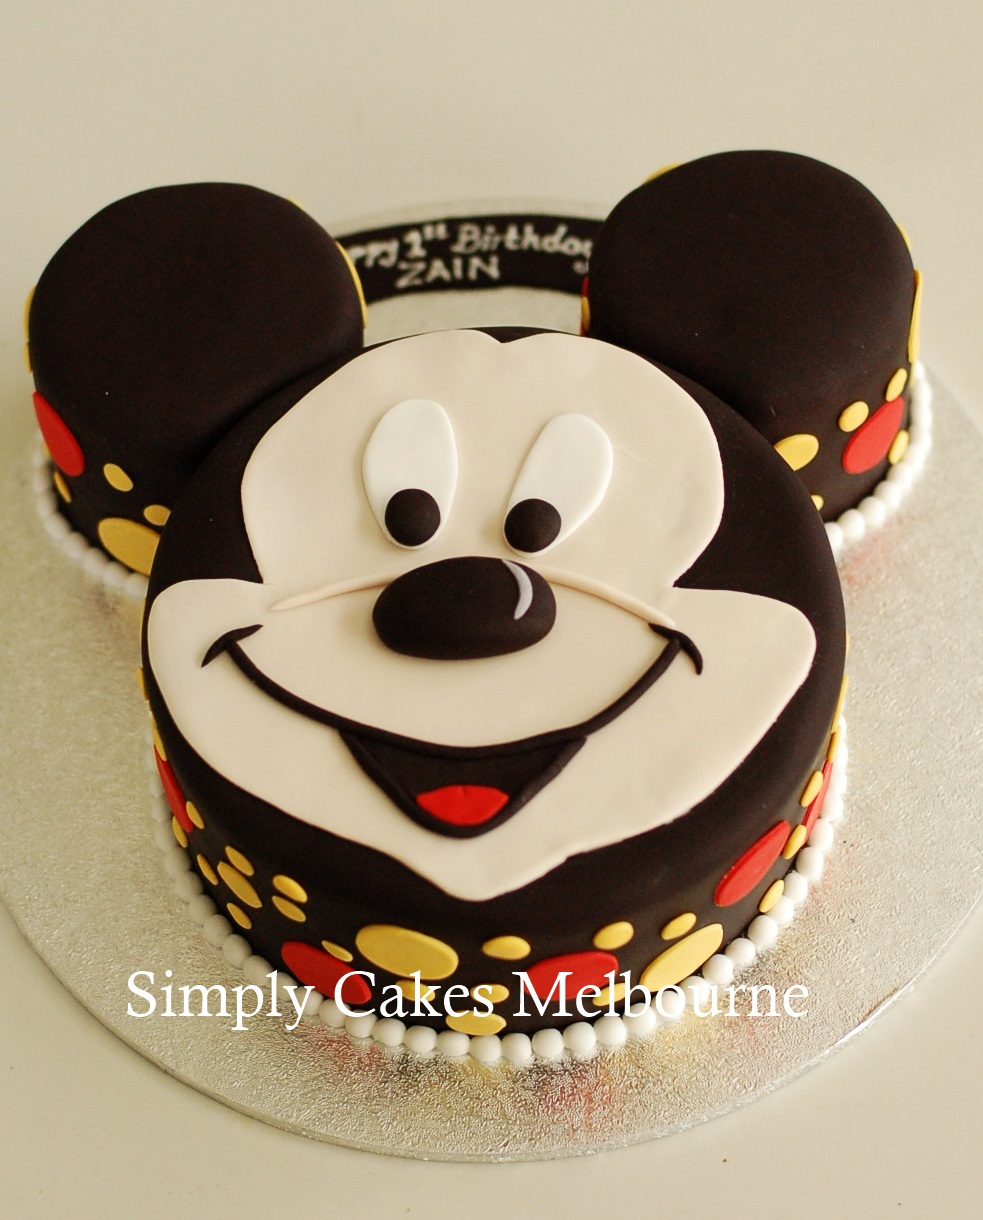 Pictures Of Mickey Mouse Face Cakes : Simply Cakes Melbourne: Number 1 Cake and Mickey mouse ...